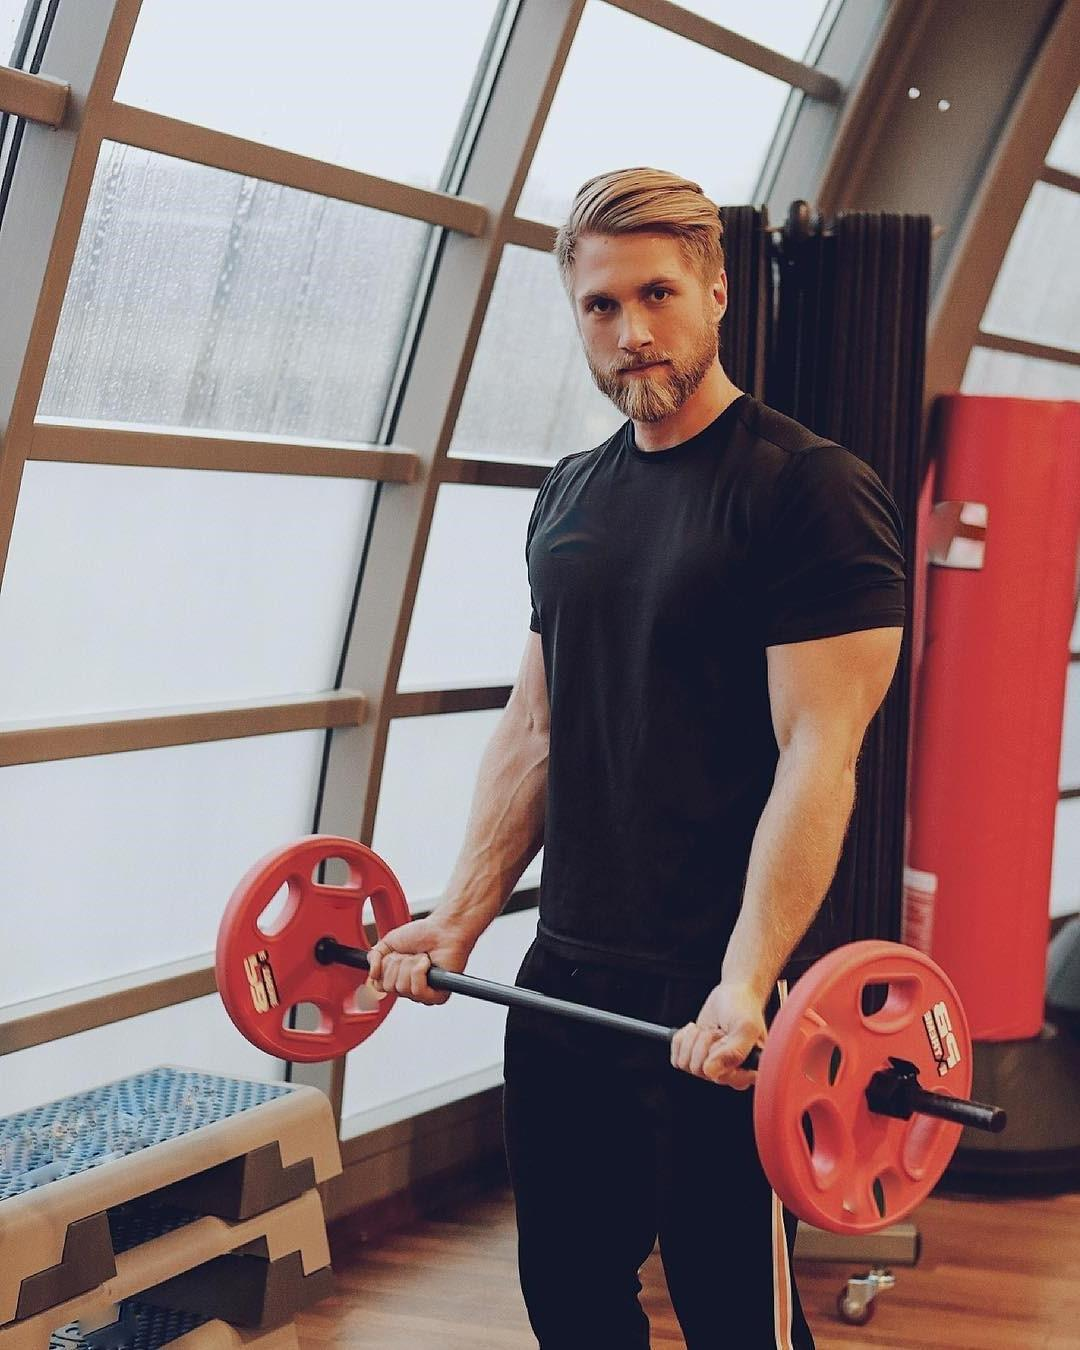 sexy-gay-blond-hipster-beard-daddy-big-biceps-lifting-weights-gym